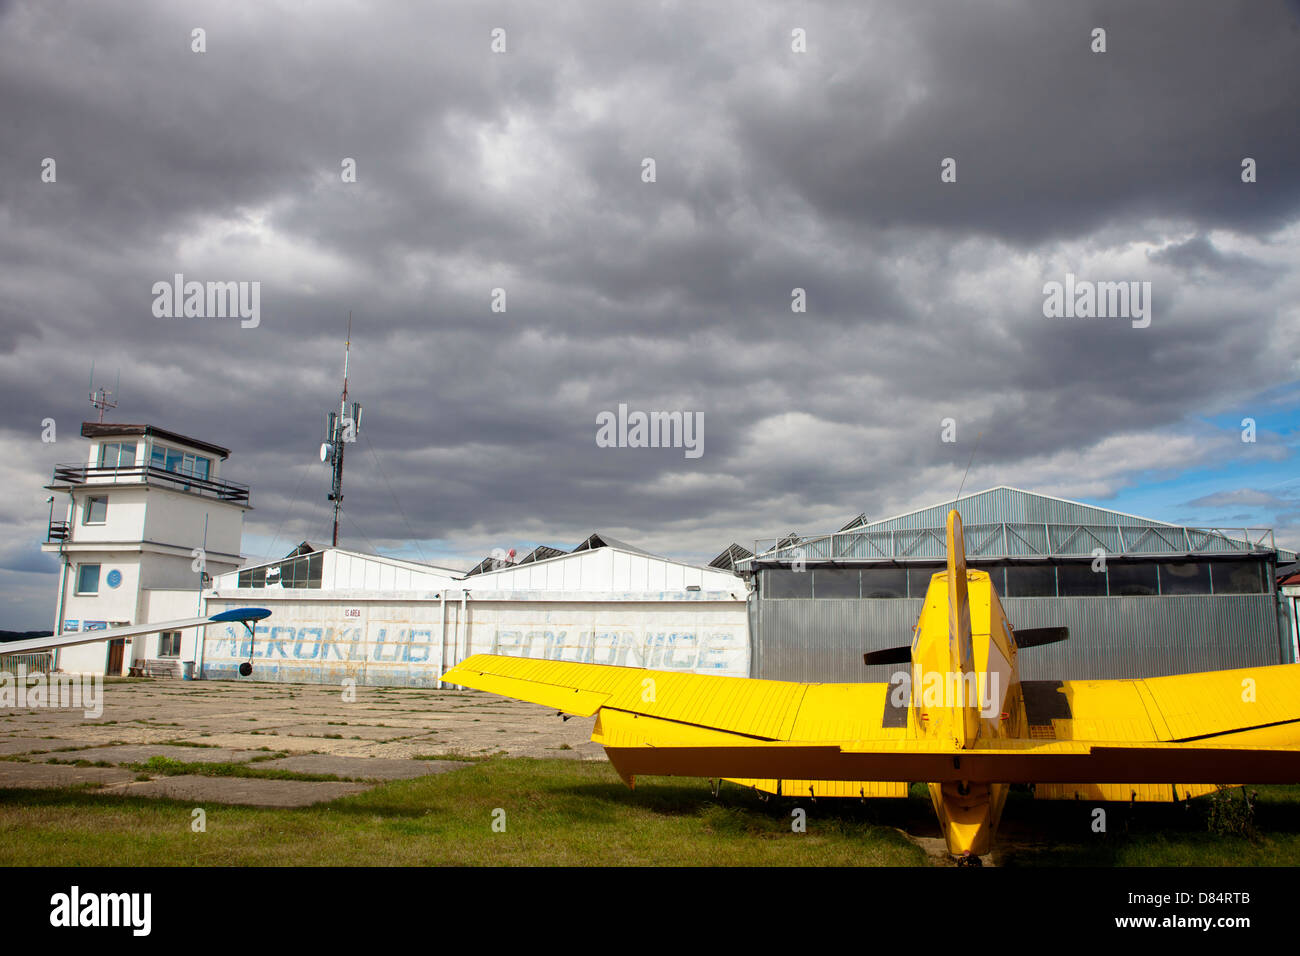 An old communist-era Zlin Z-37A crop spraying aircraft, parked on the apron at Roudnice Airfield, Czech Republic. - Stock Image